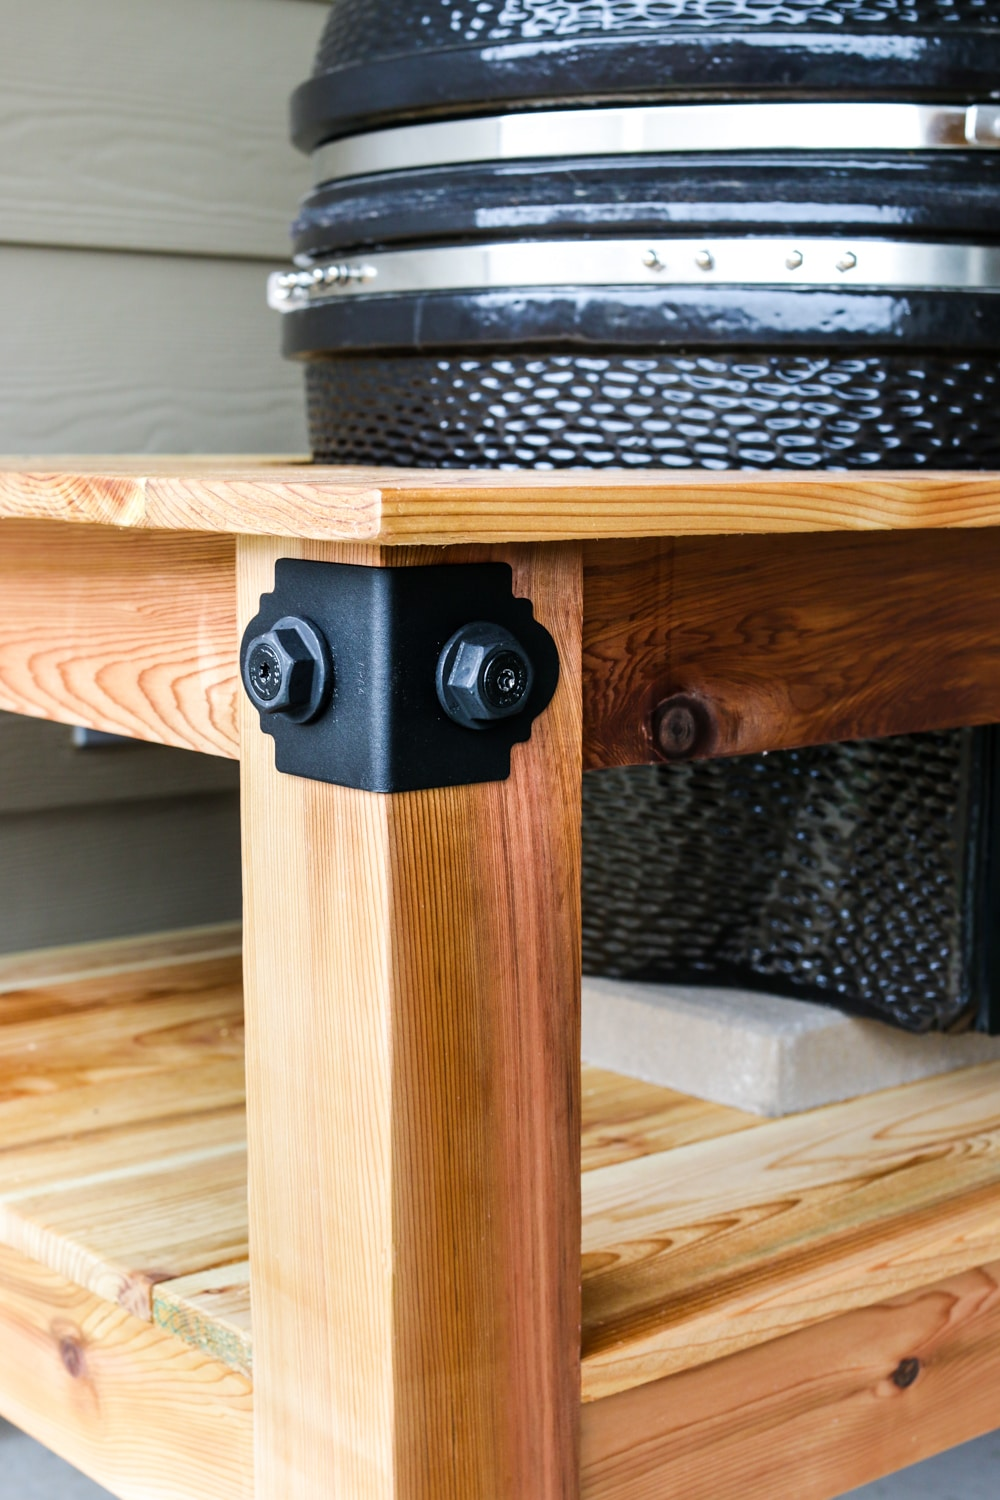 How to build a DIY kamado grill table with Simpson Strong-Tie Outdoor Accents